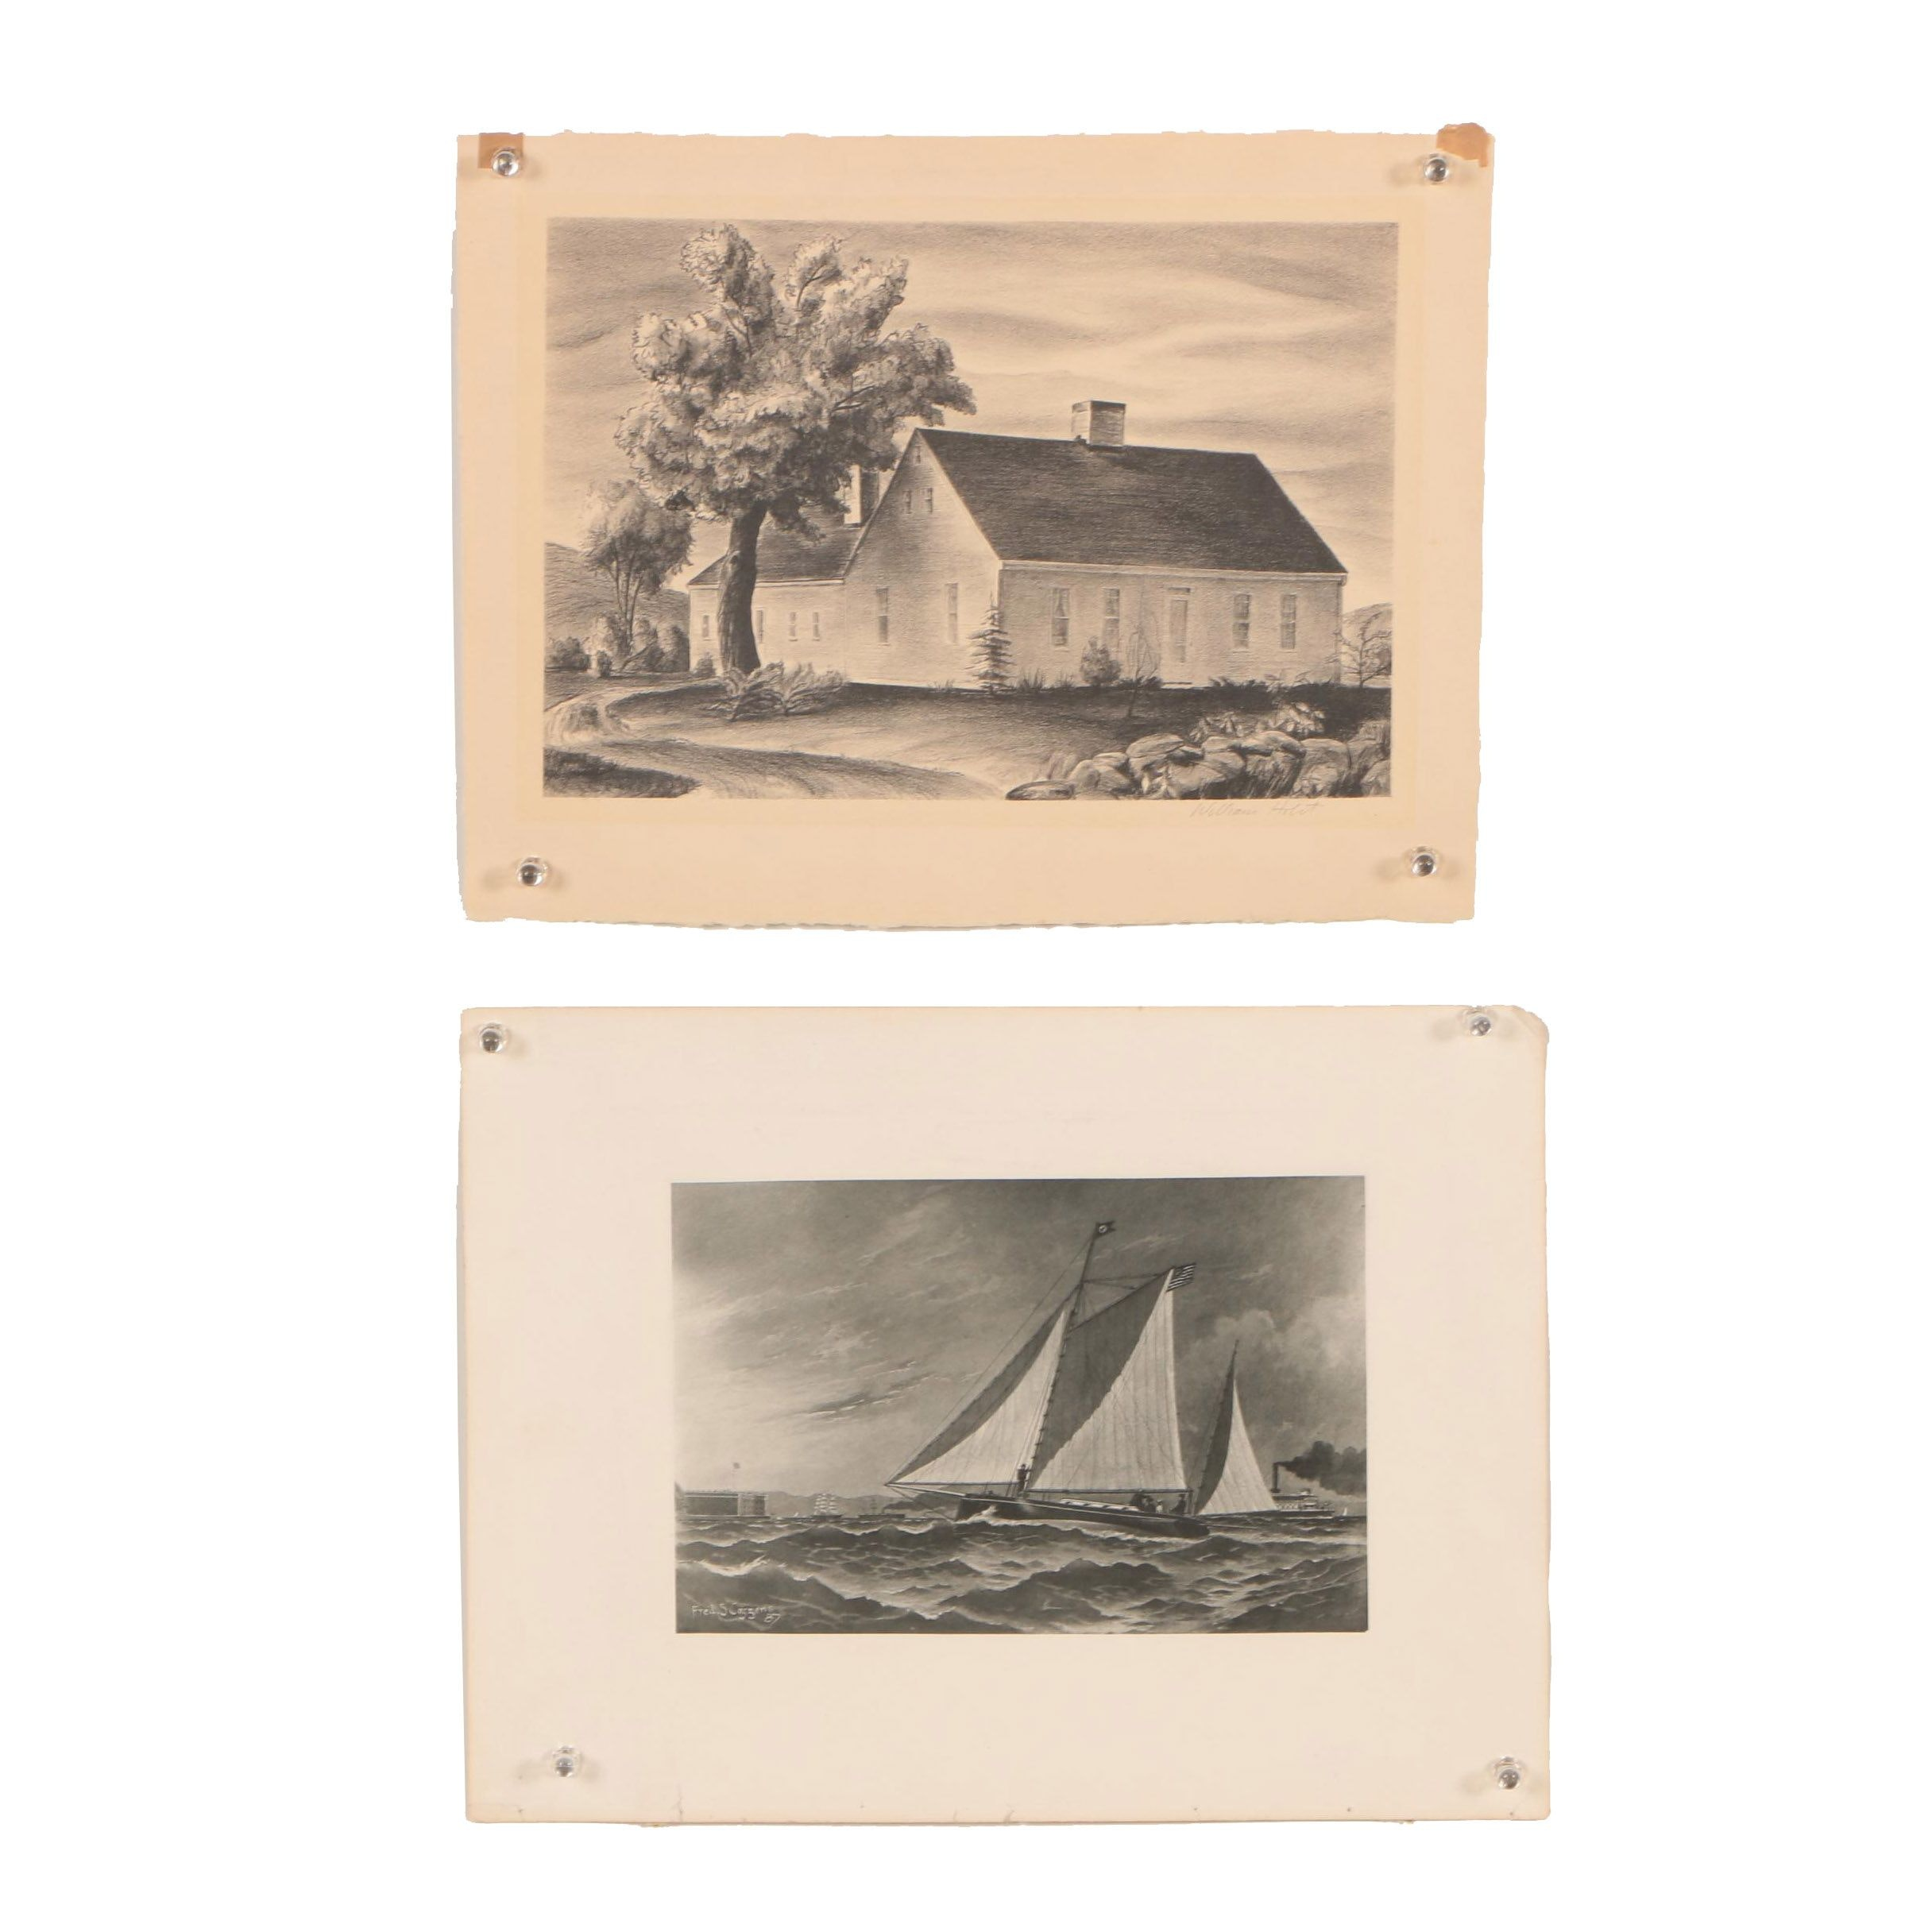 William Holst Lithograph and Collotype after Fred S. Cozzens